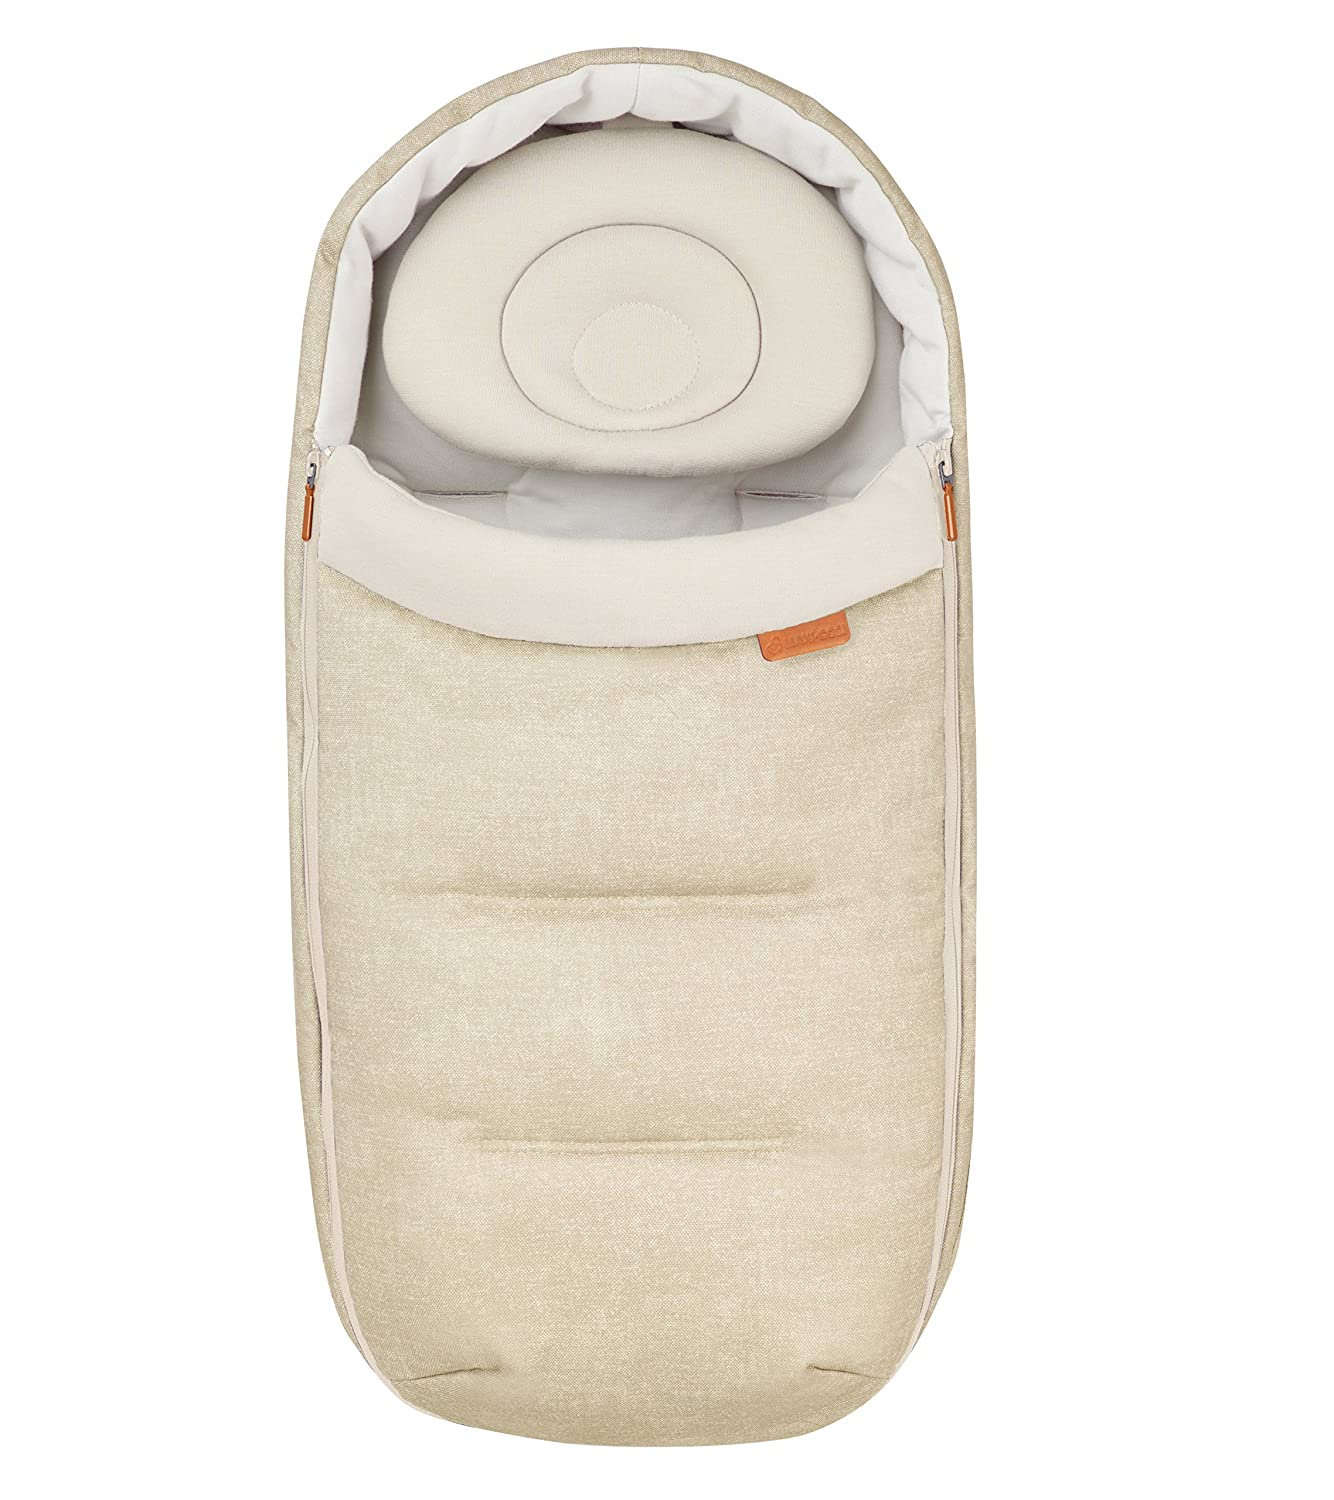 Maxi-Cosi Universal Baby Cocoon, Nomad Sand 1819332110